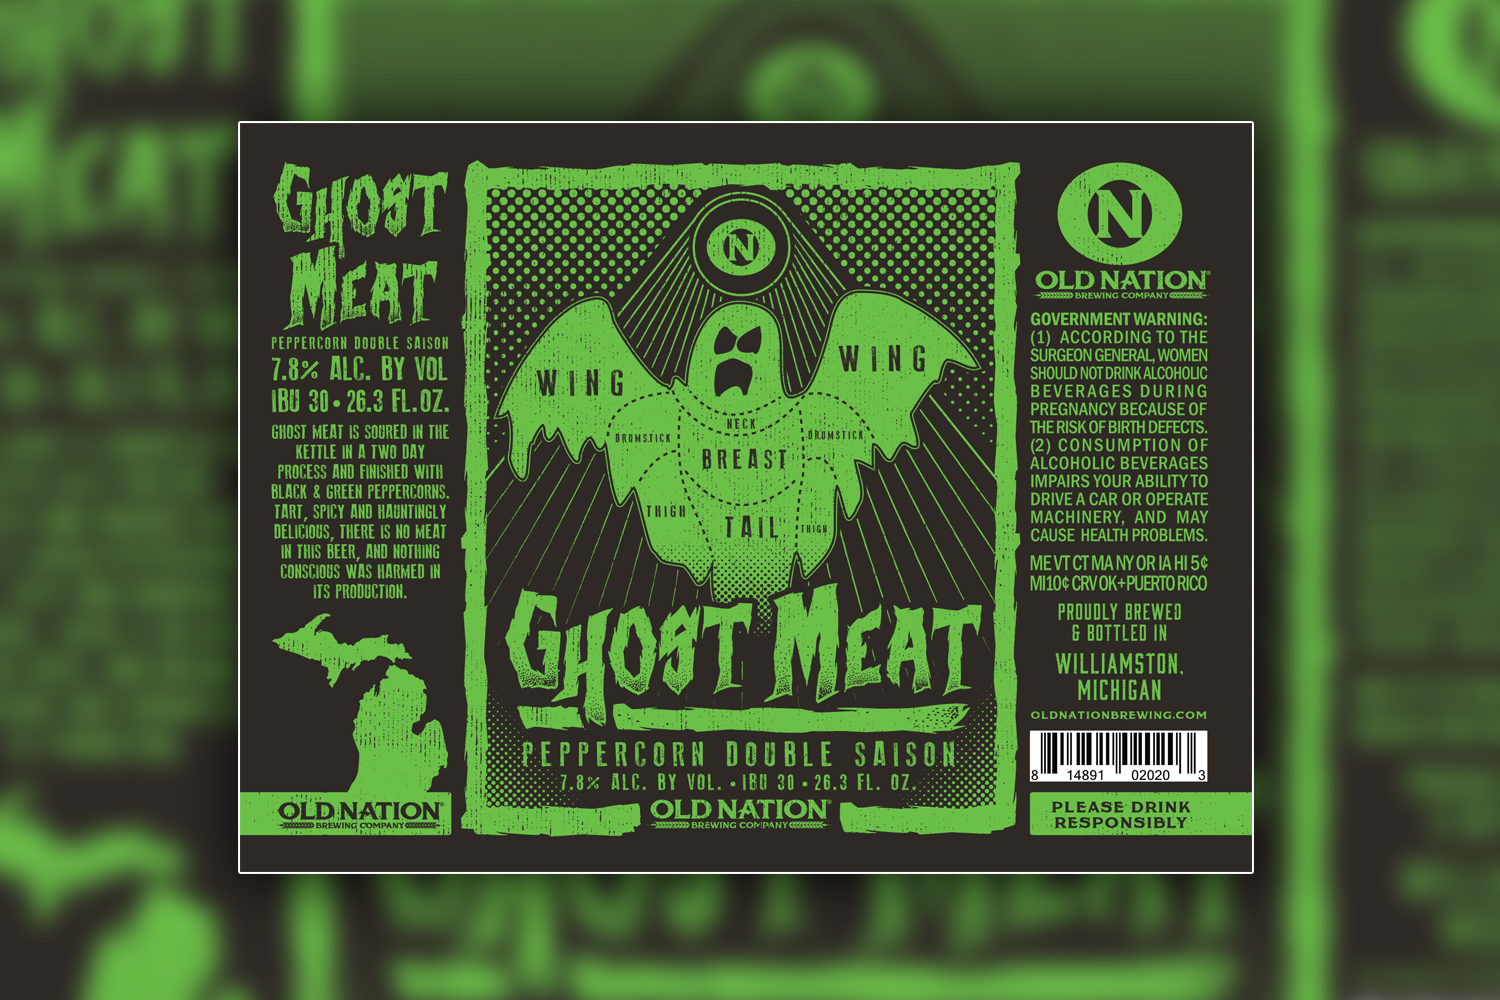 Old Nation Ghost Meat